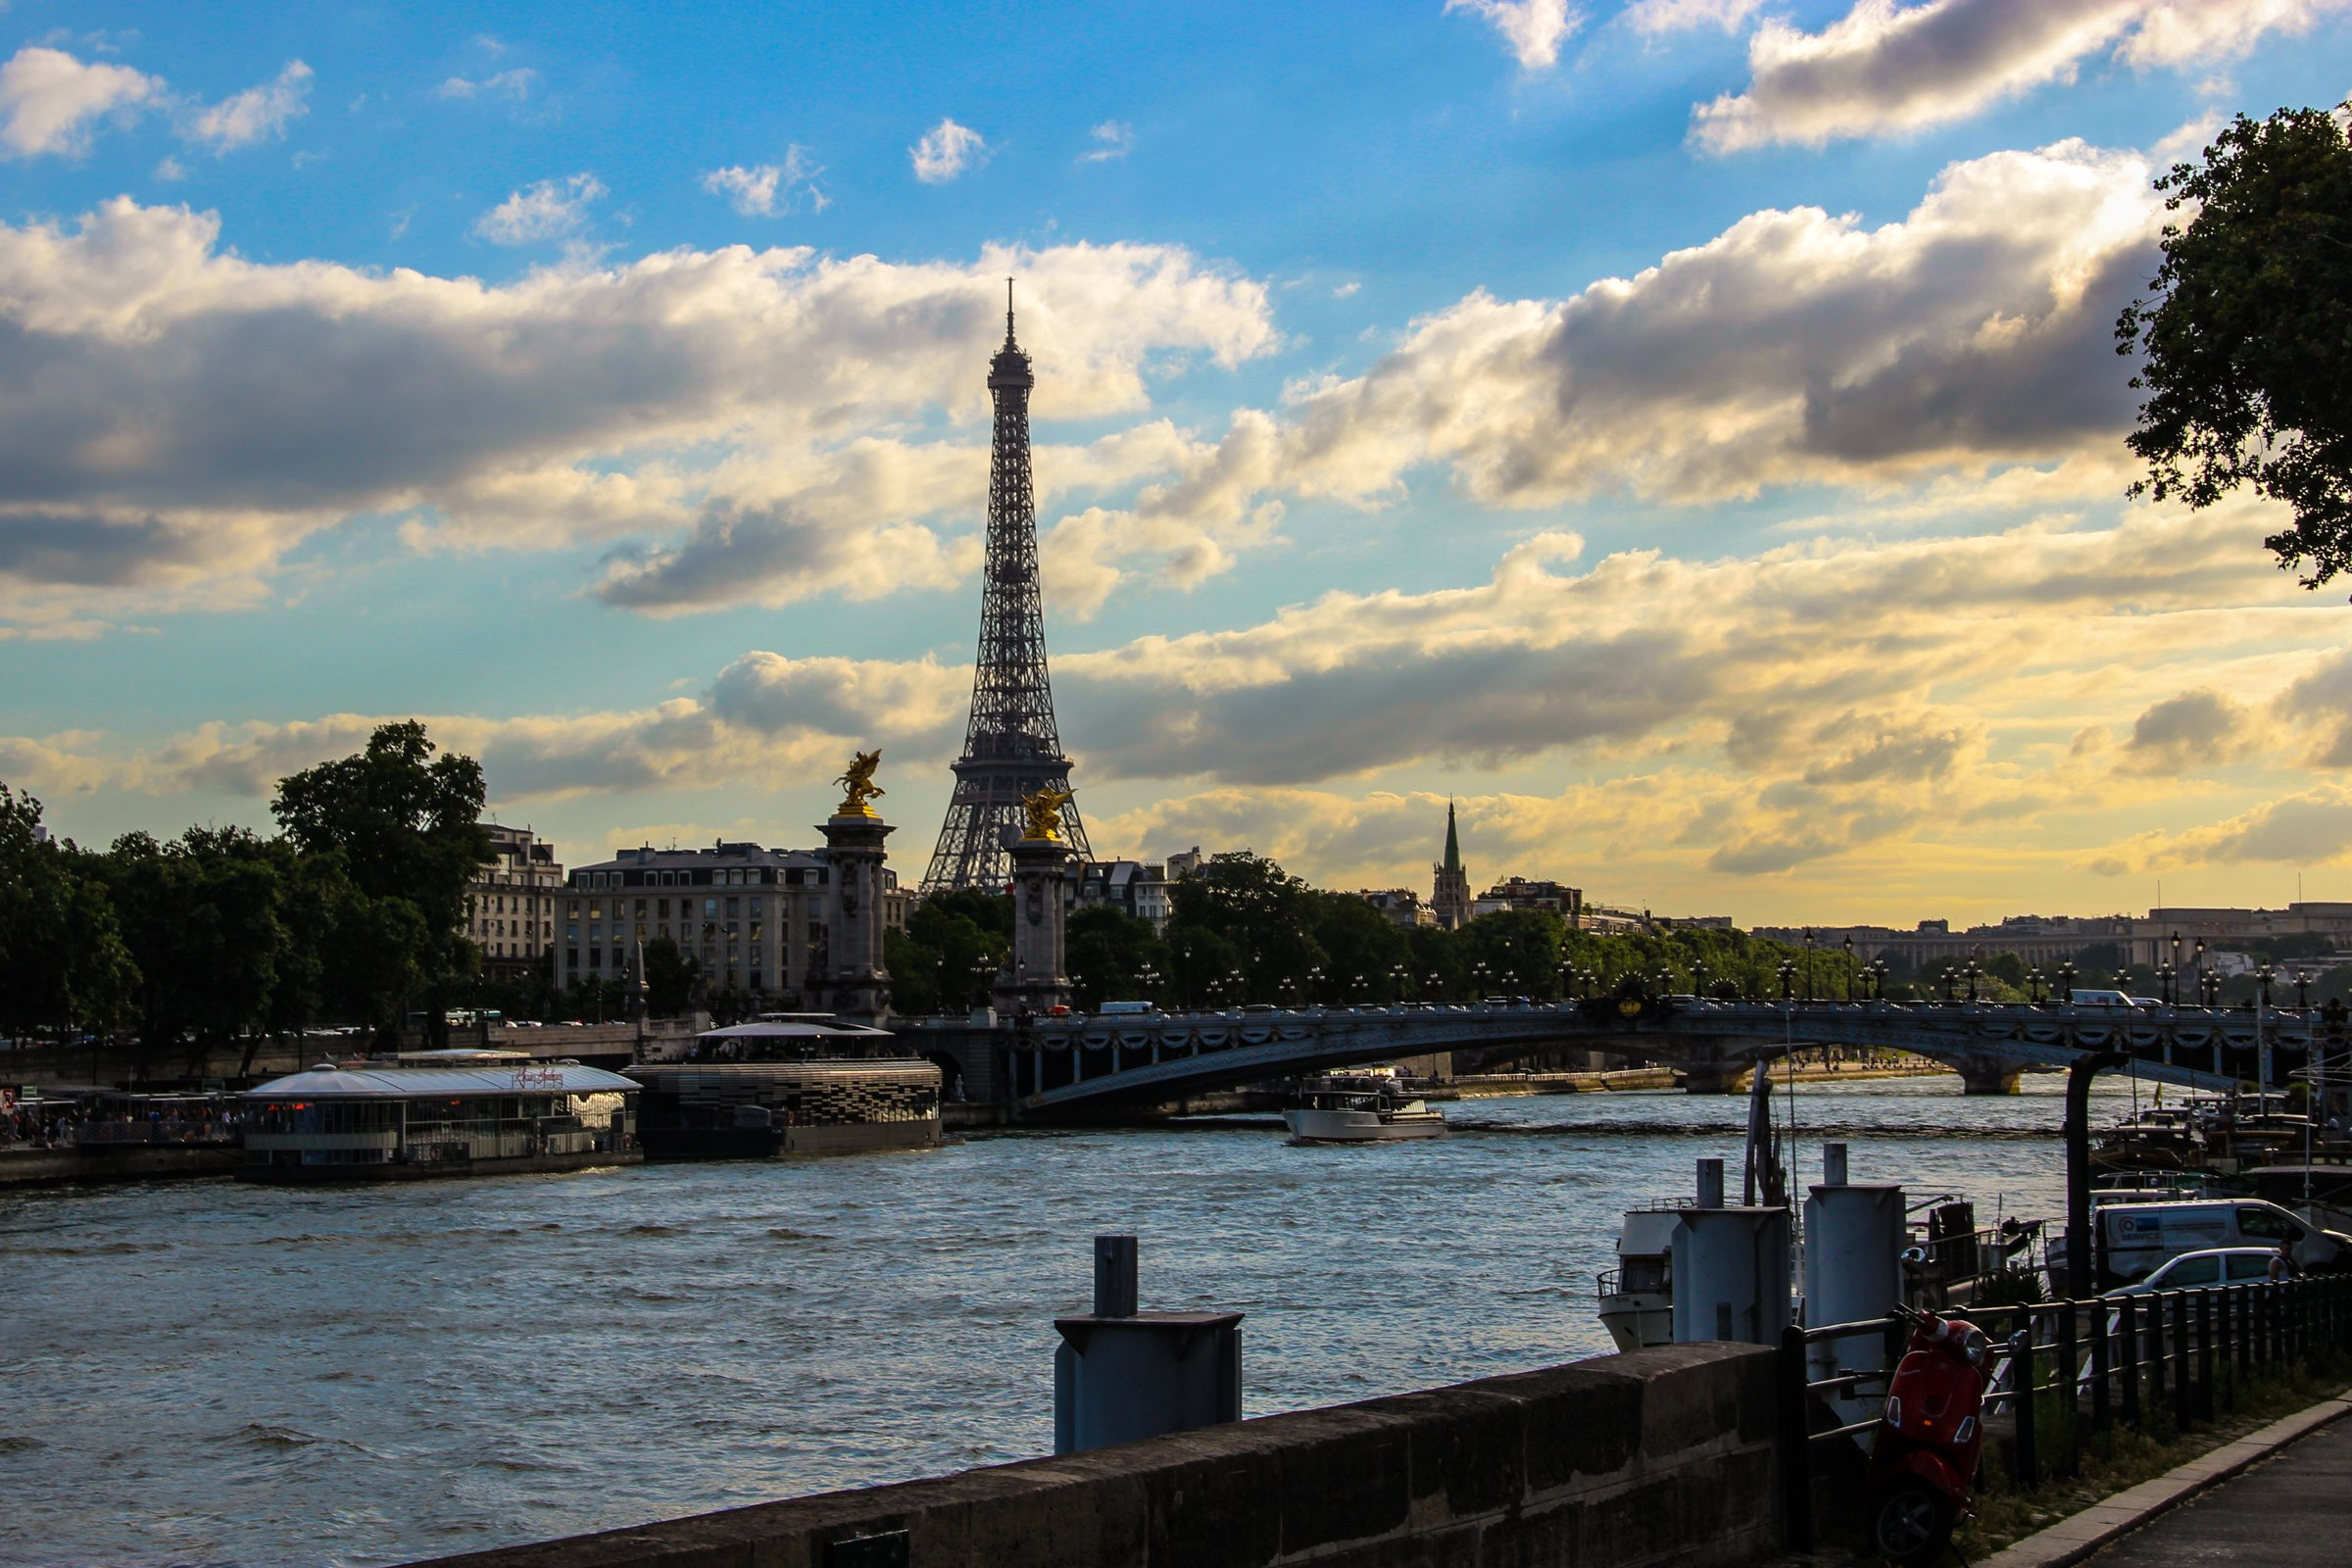 Eiffel Tower by River Under Clouds